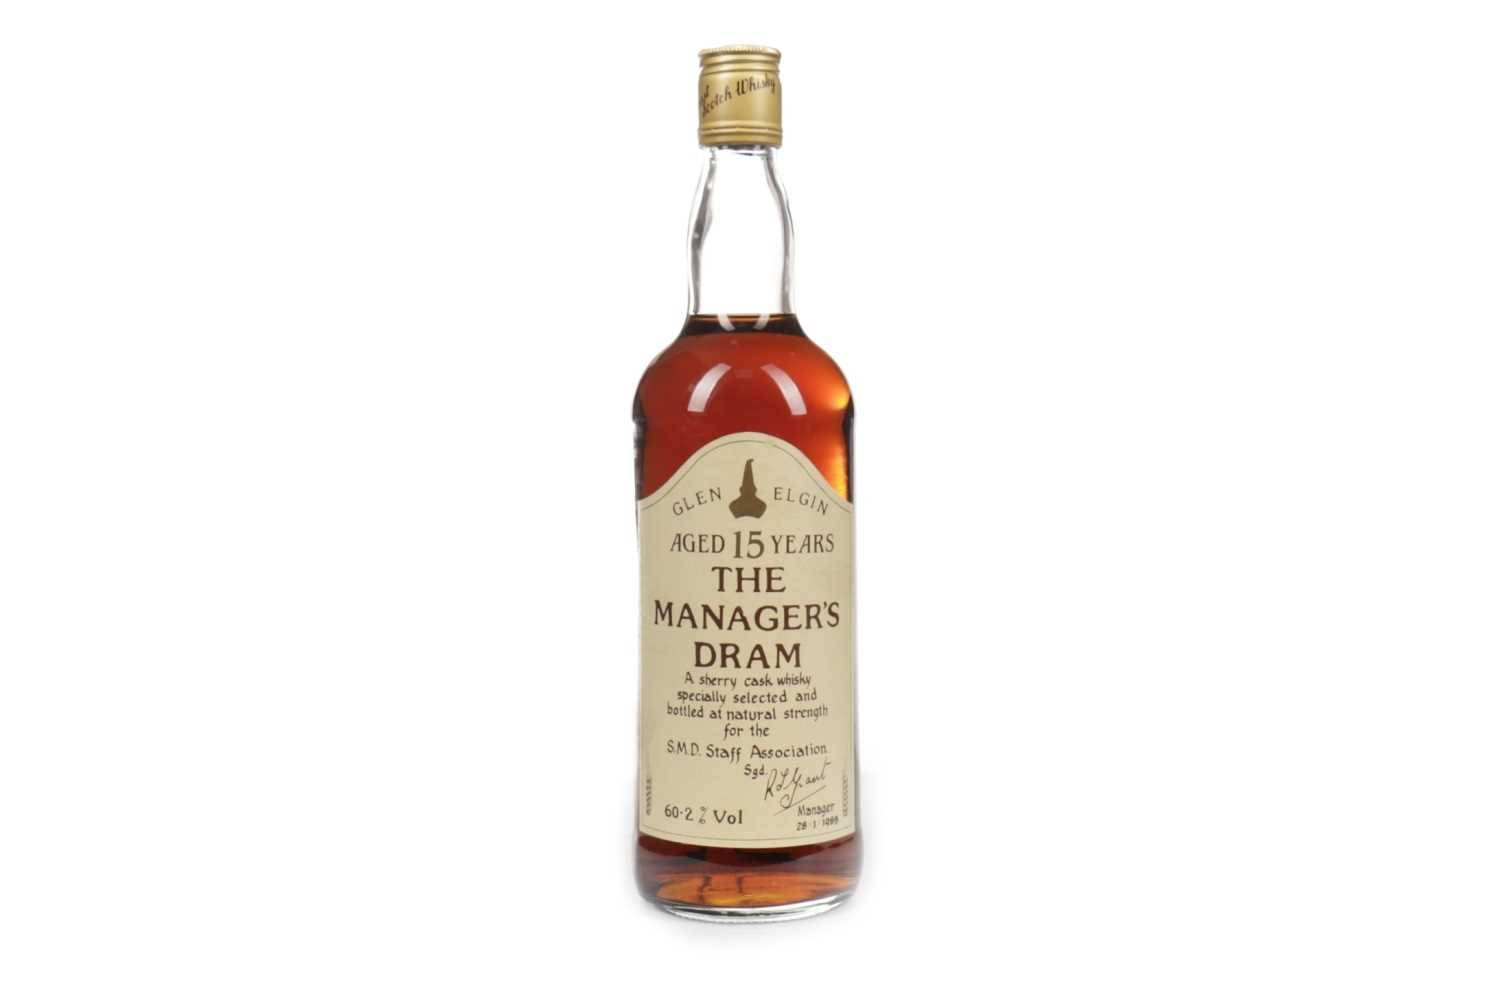 Lot 216-GLEN ELGIN MANAGERS DRAM AGED 15 YEARS